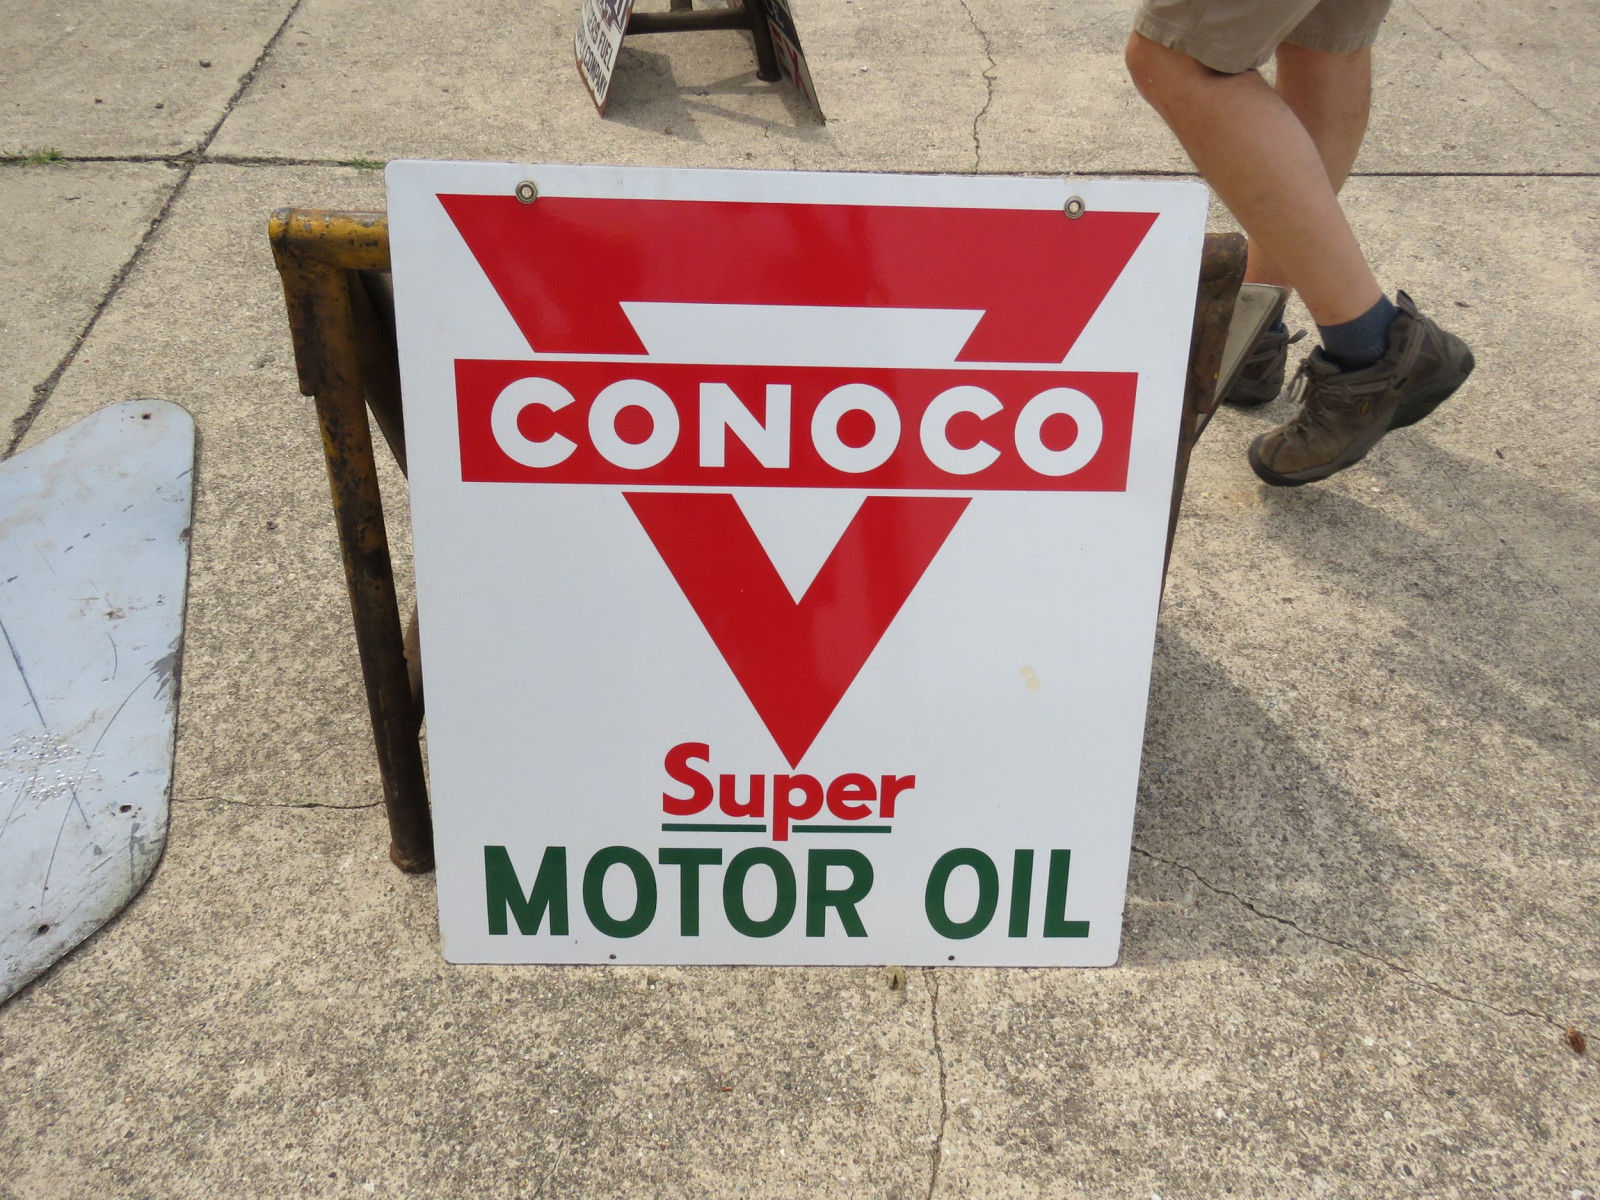 Conoco Super Motor Oil Porcelain sign - Image 1